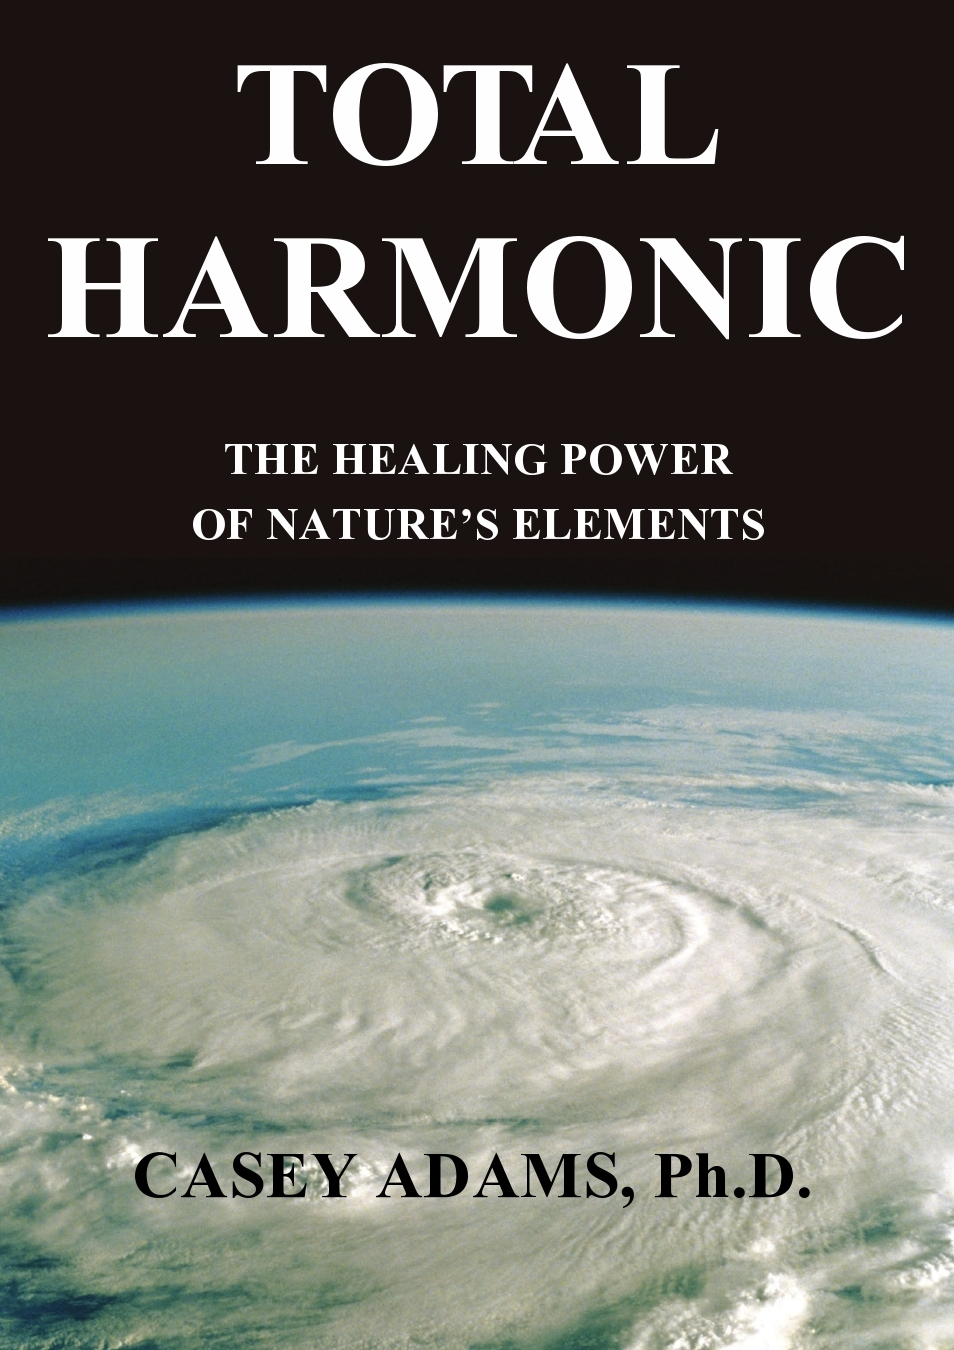 Total Harmonic: The Healing Power of Natures Elements